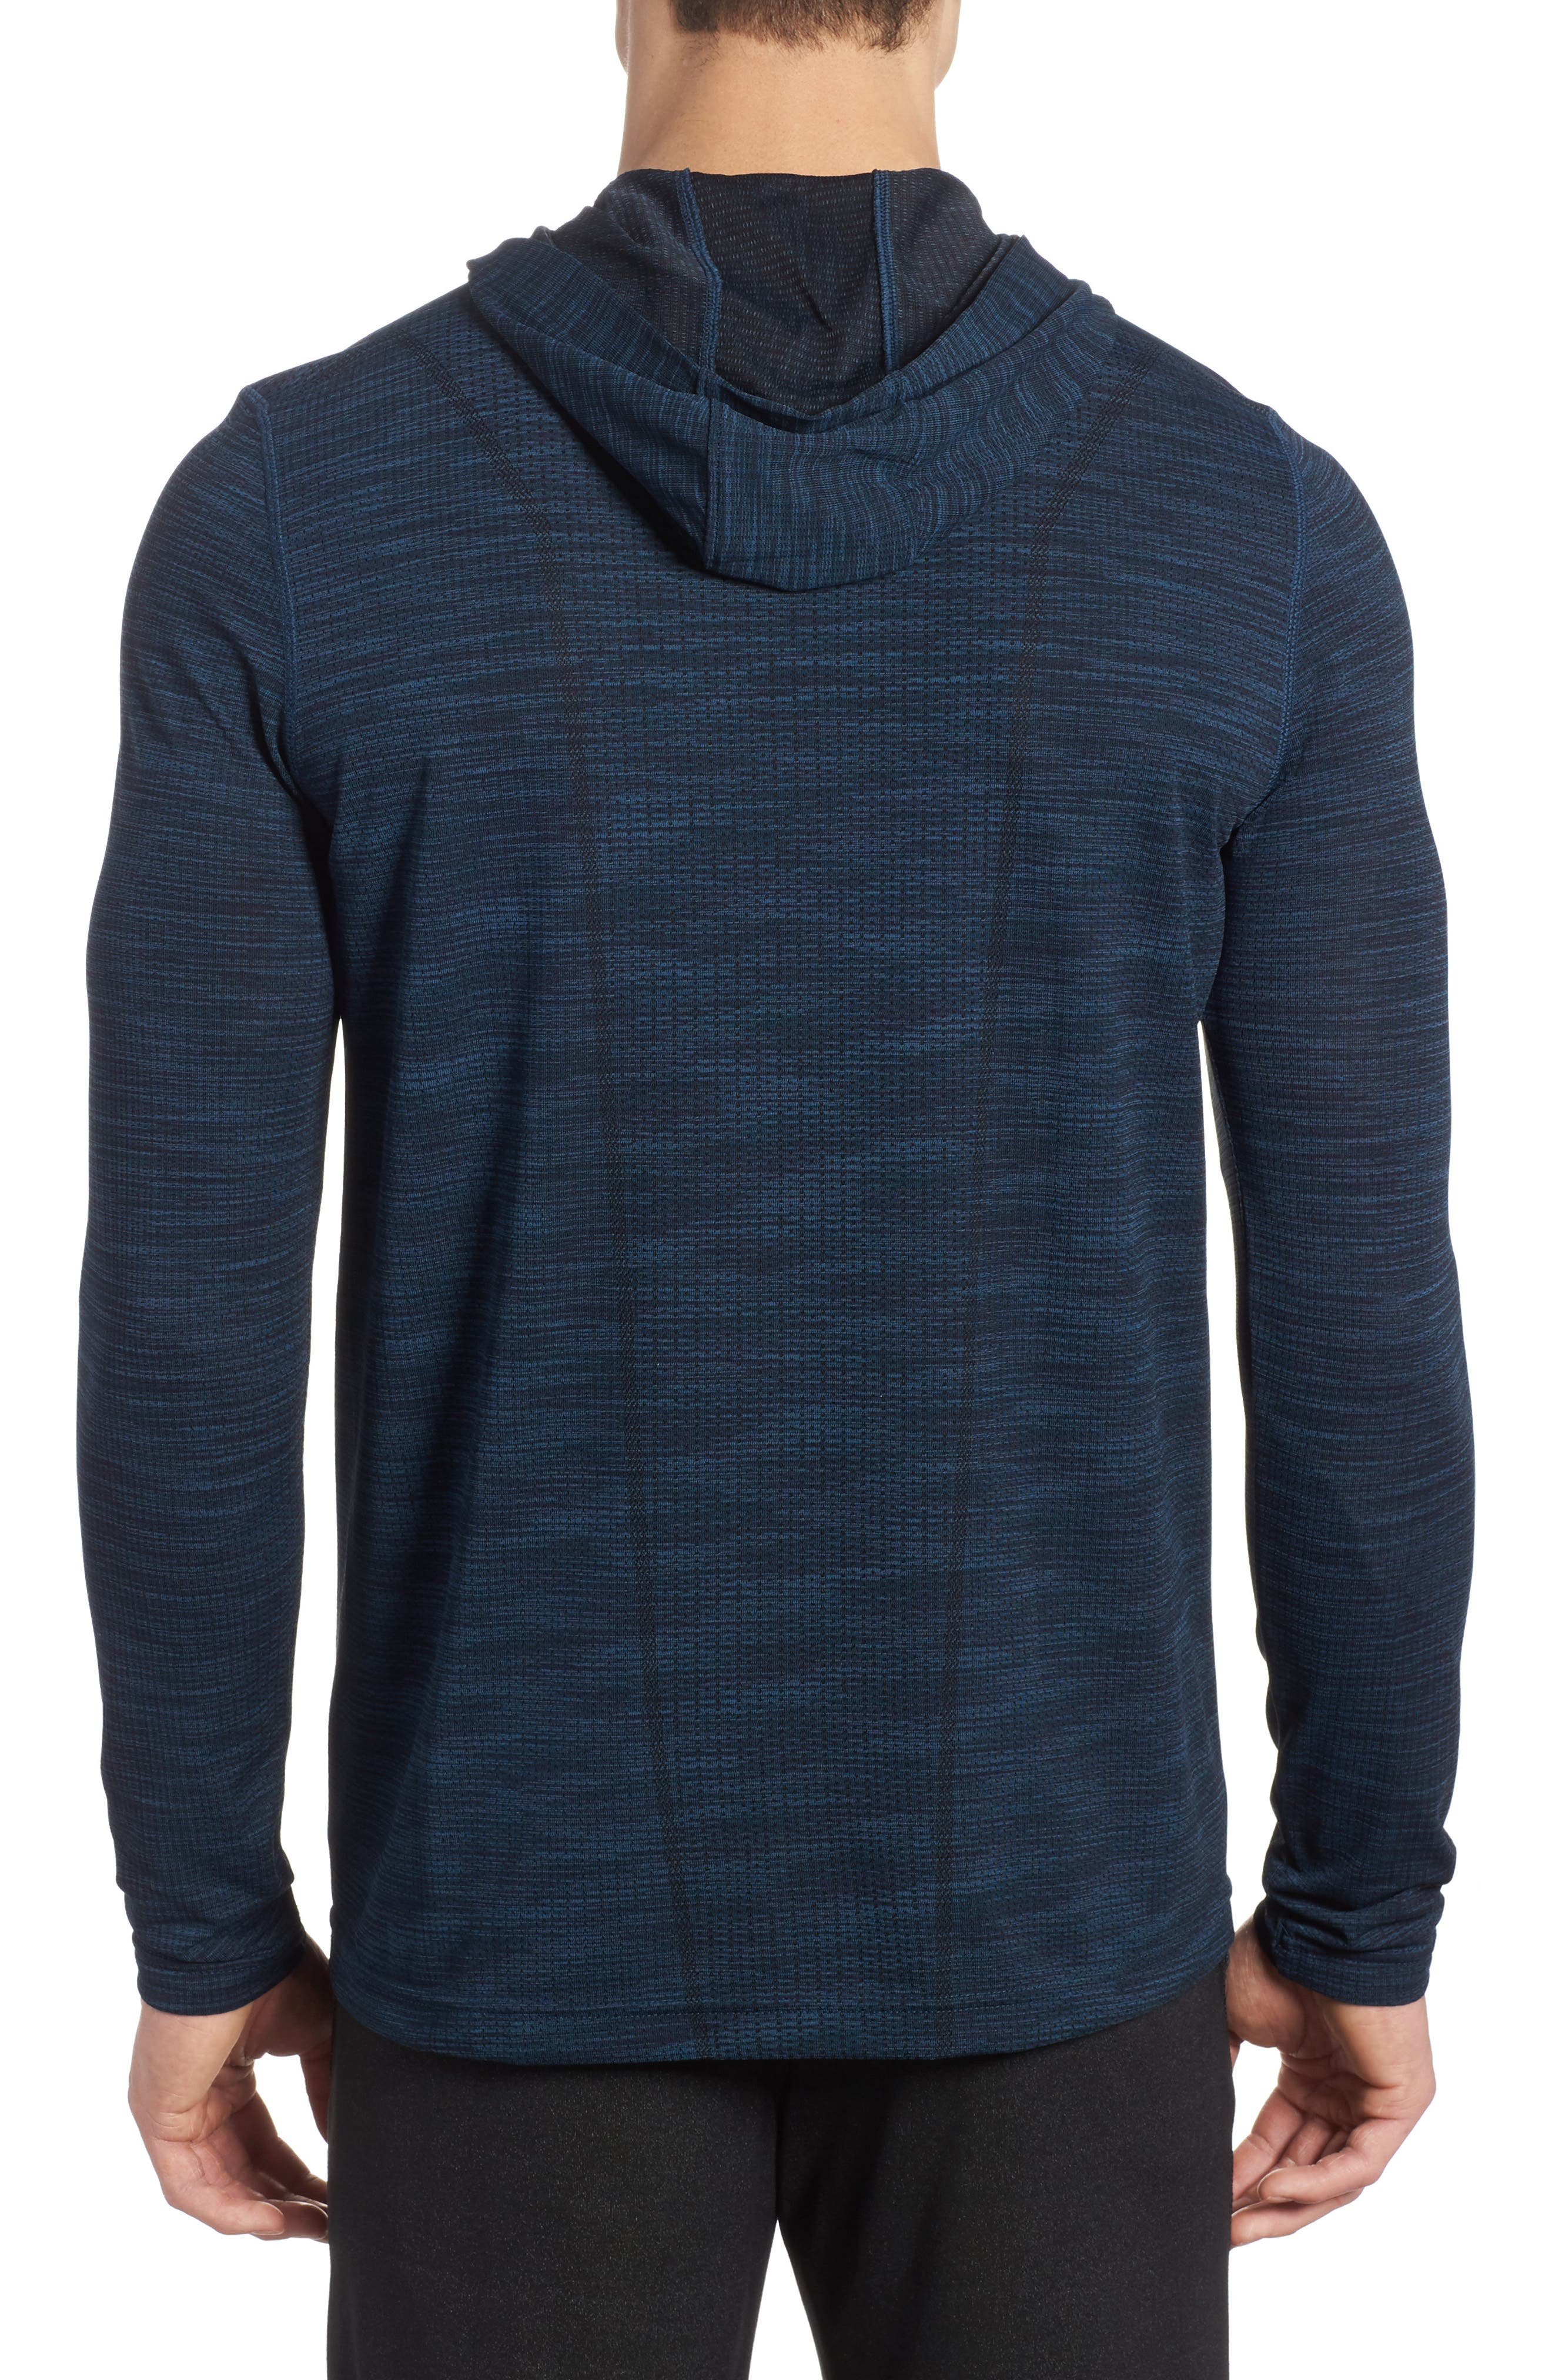 Threadbone Fitted Seamless Hoodie,                             Alternate thumbnail 2, color,                             True Ink/ Anthracite